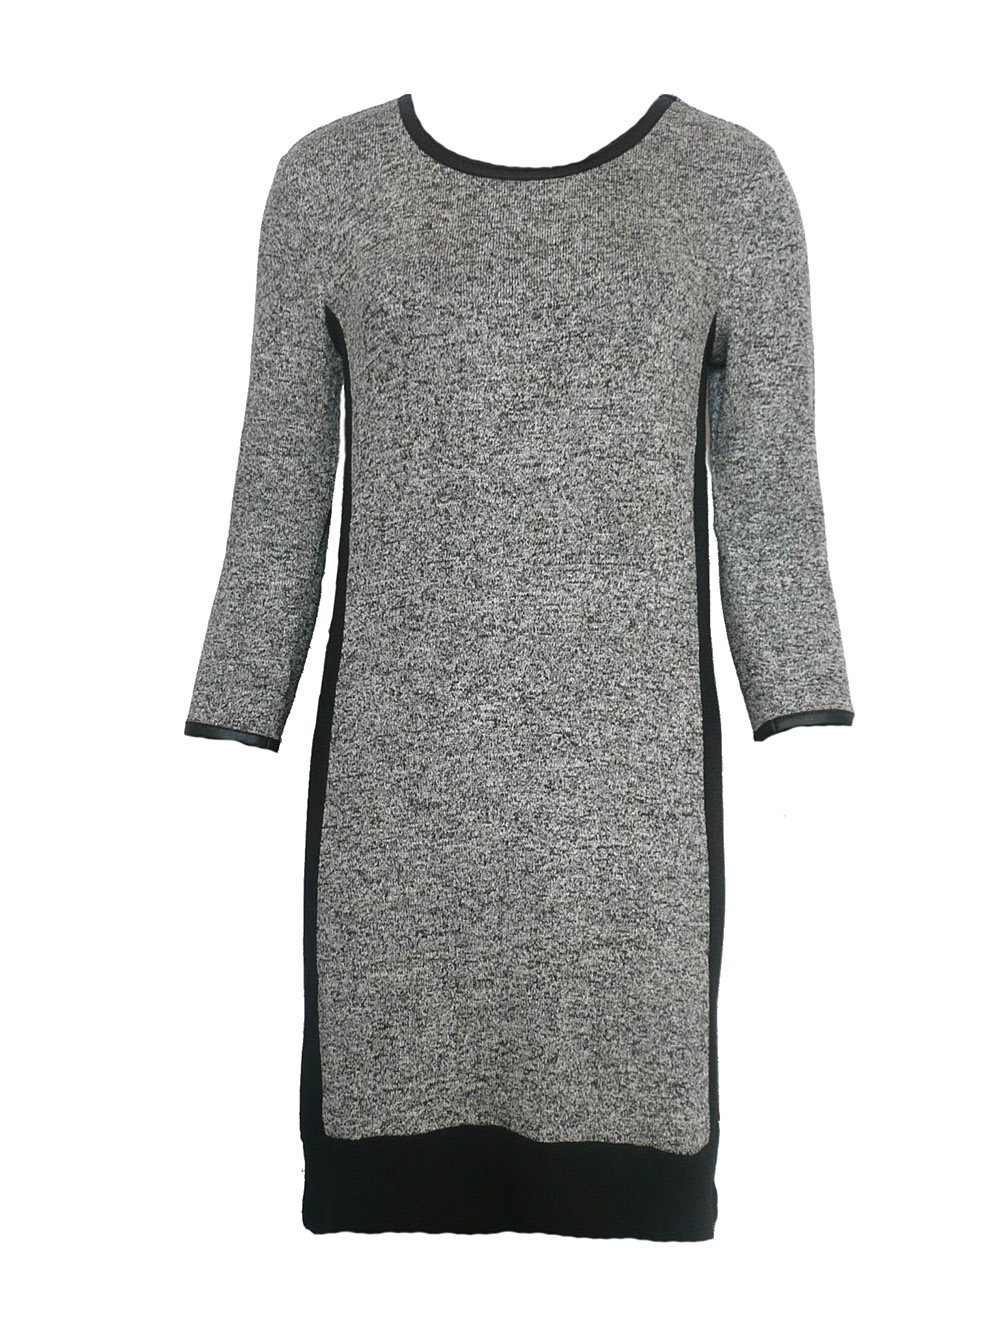 drs grey tweed knit.jpg